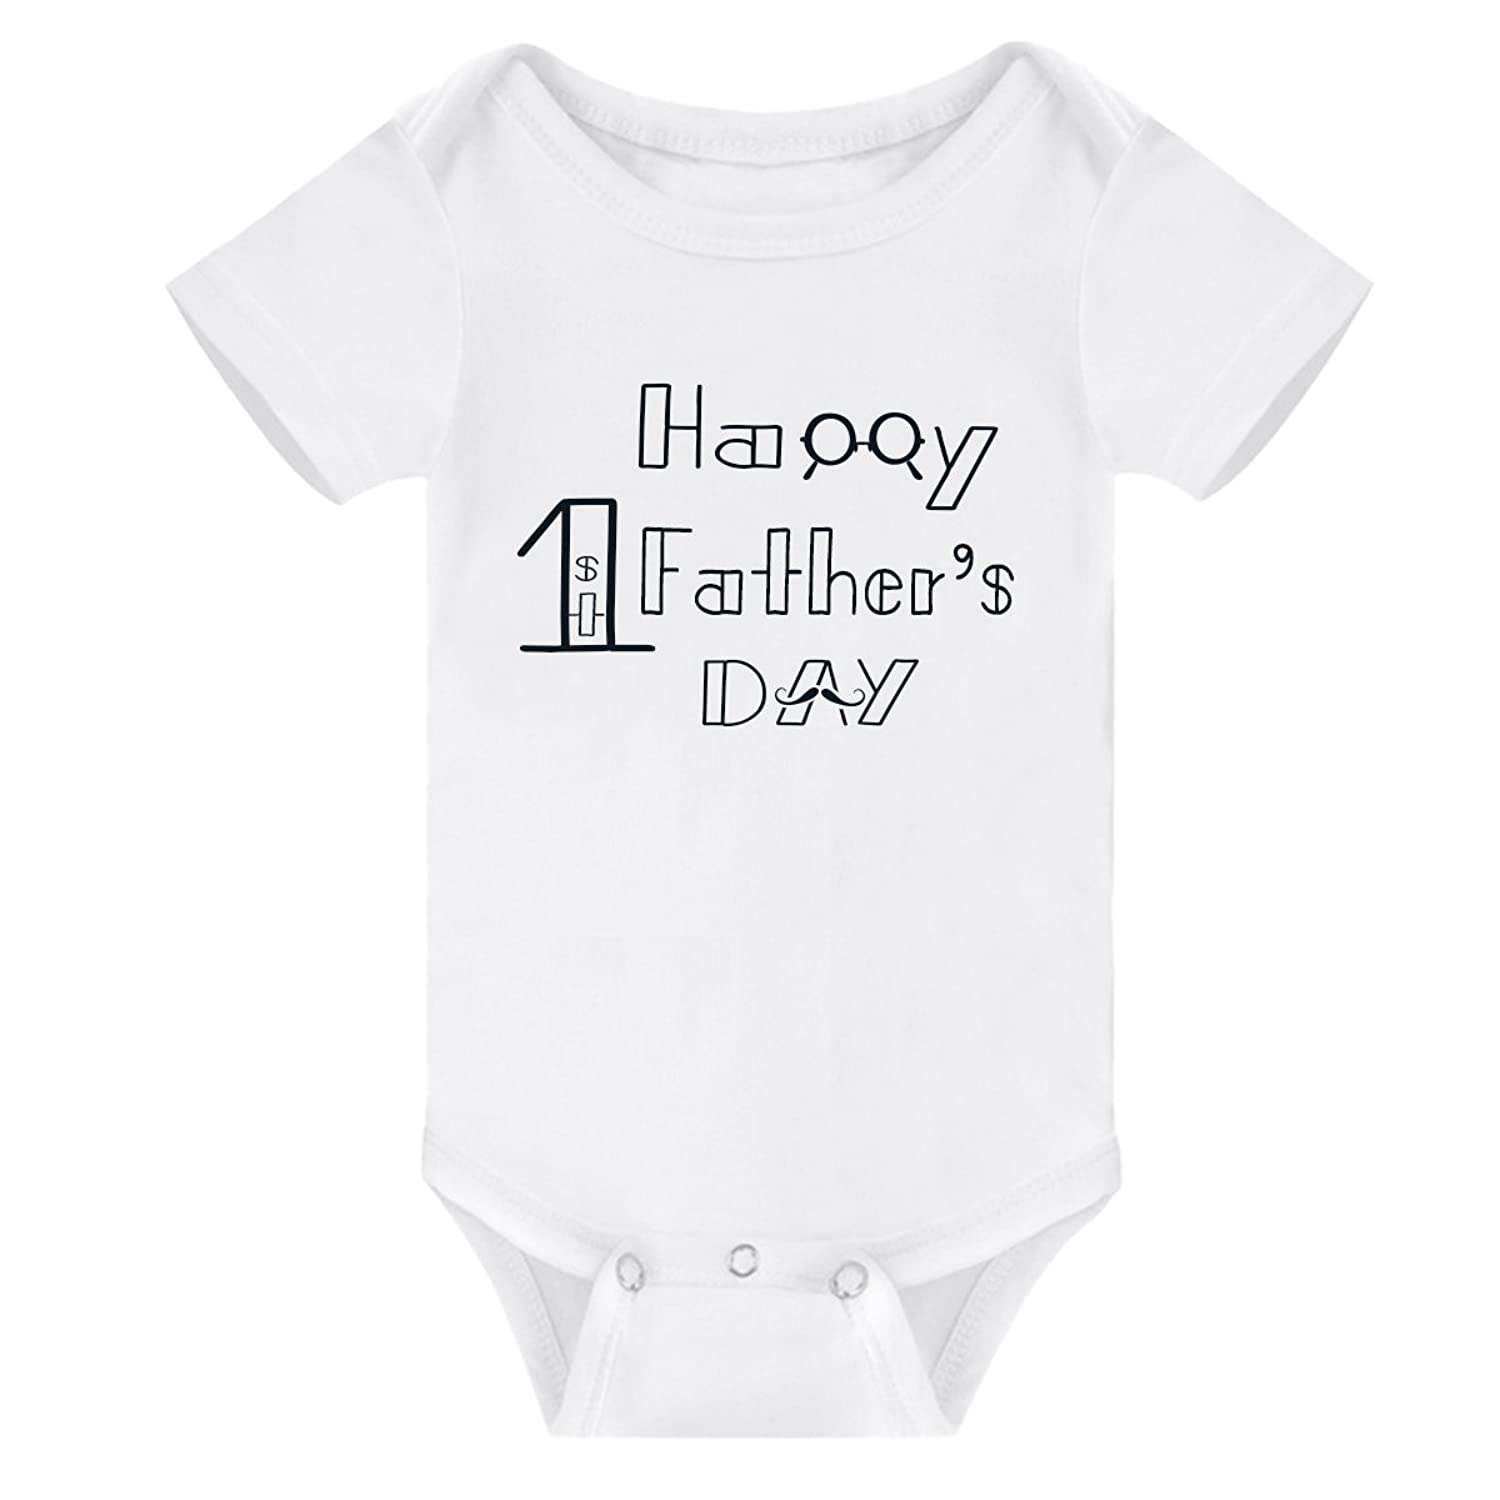 c0d5e6e6a Winzik Newborn Baby Boys Girls Outfits Happy 1st Father's Day Letters Print  Funny Onesie Romper Jumpsuit